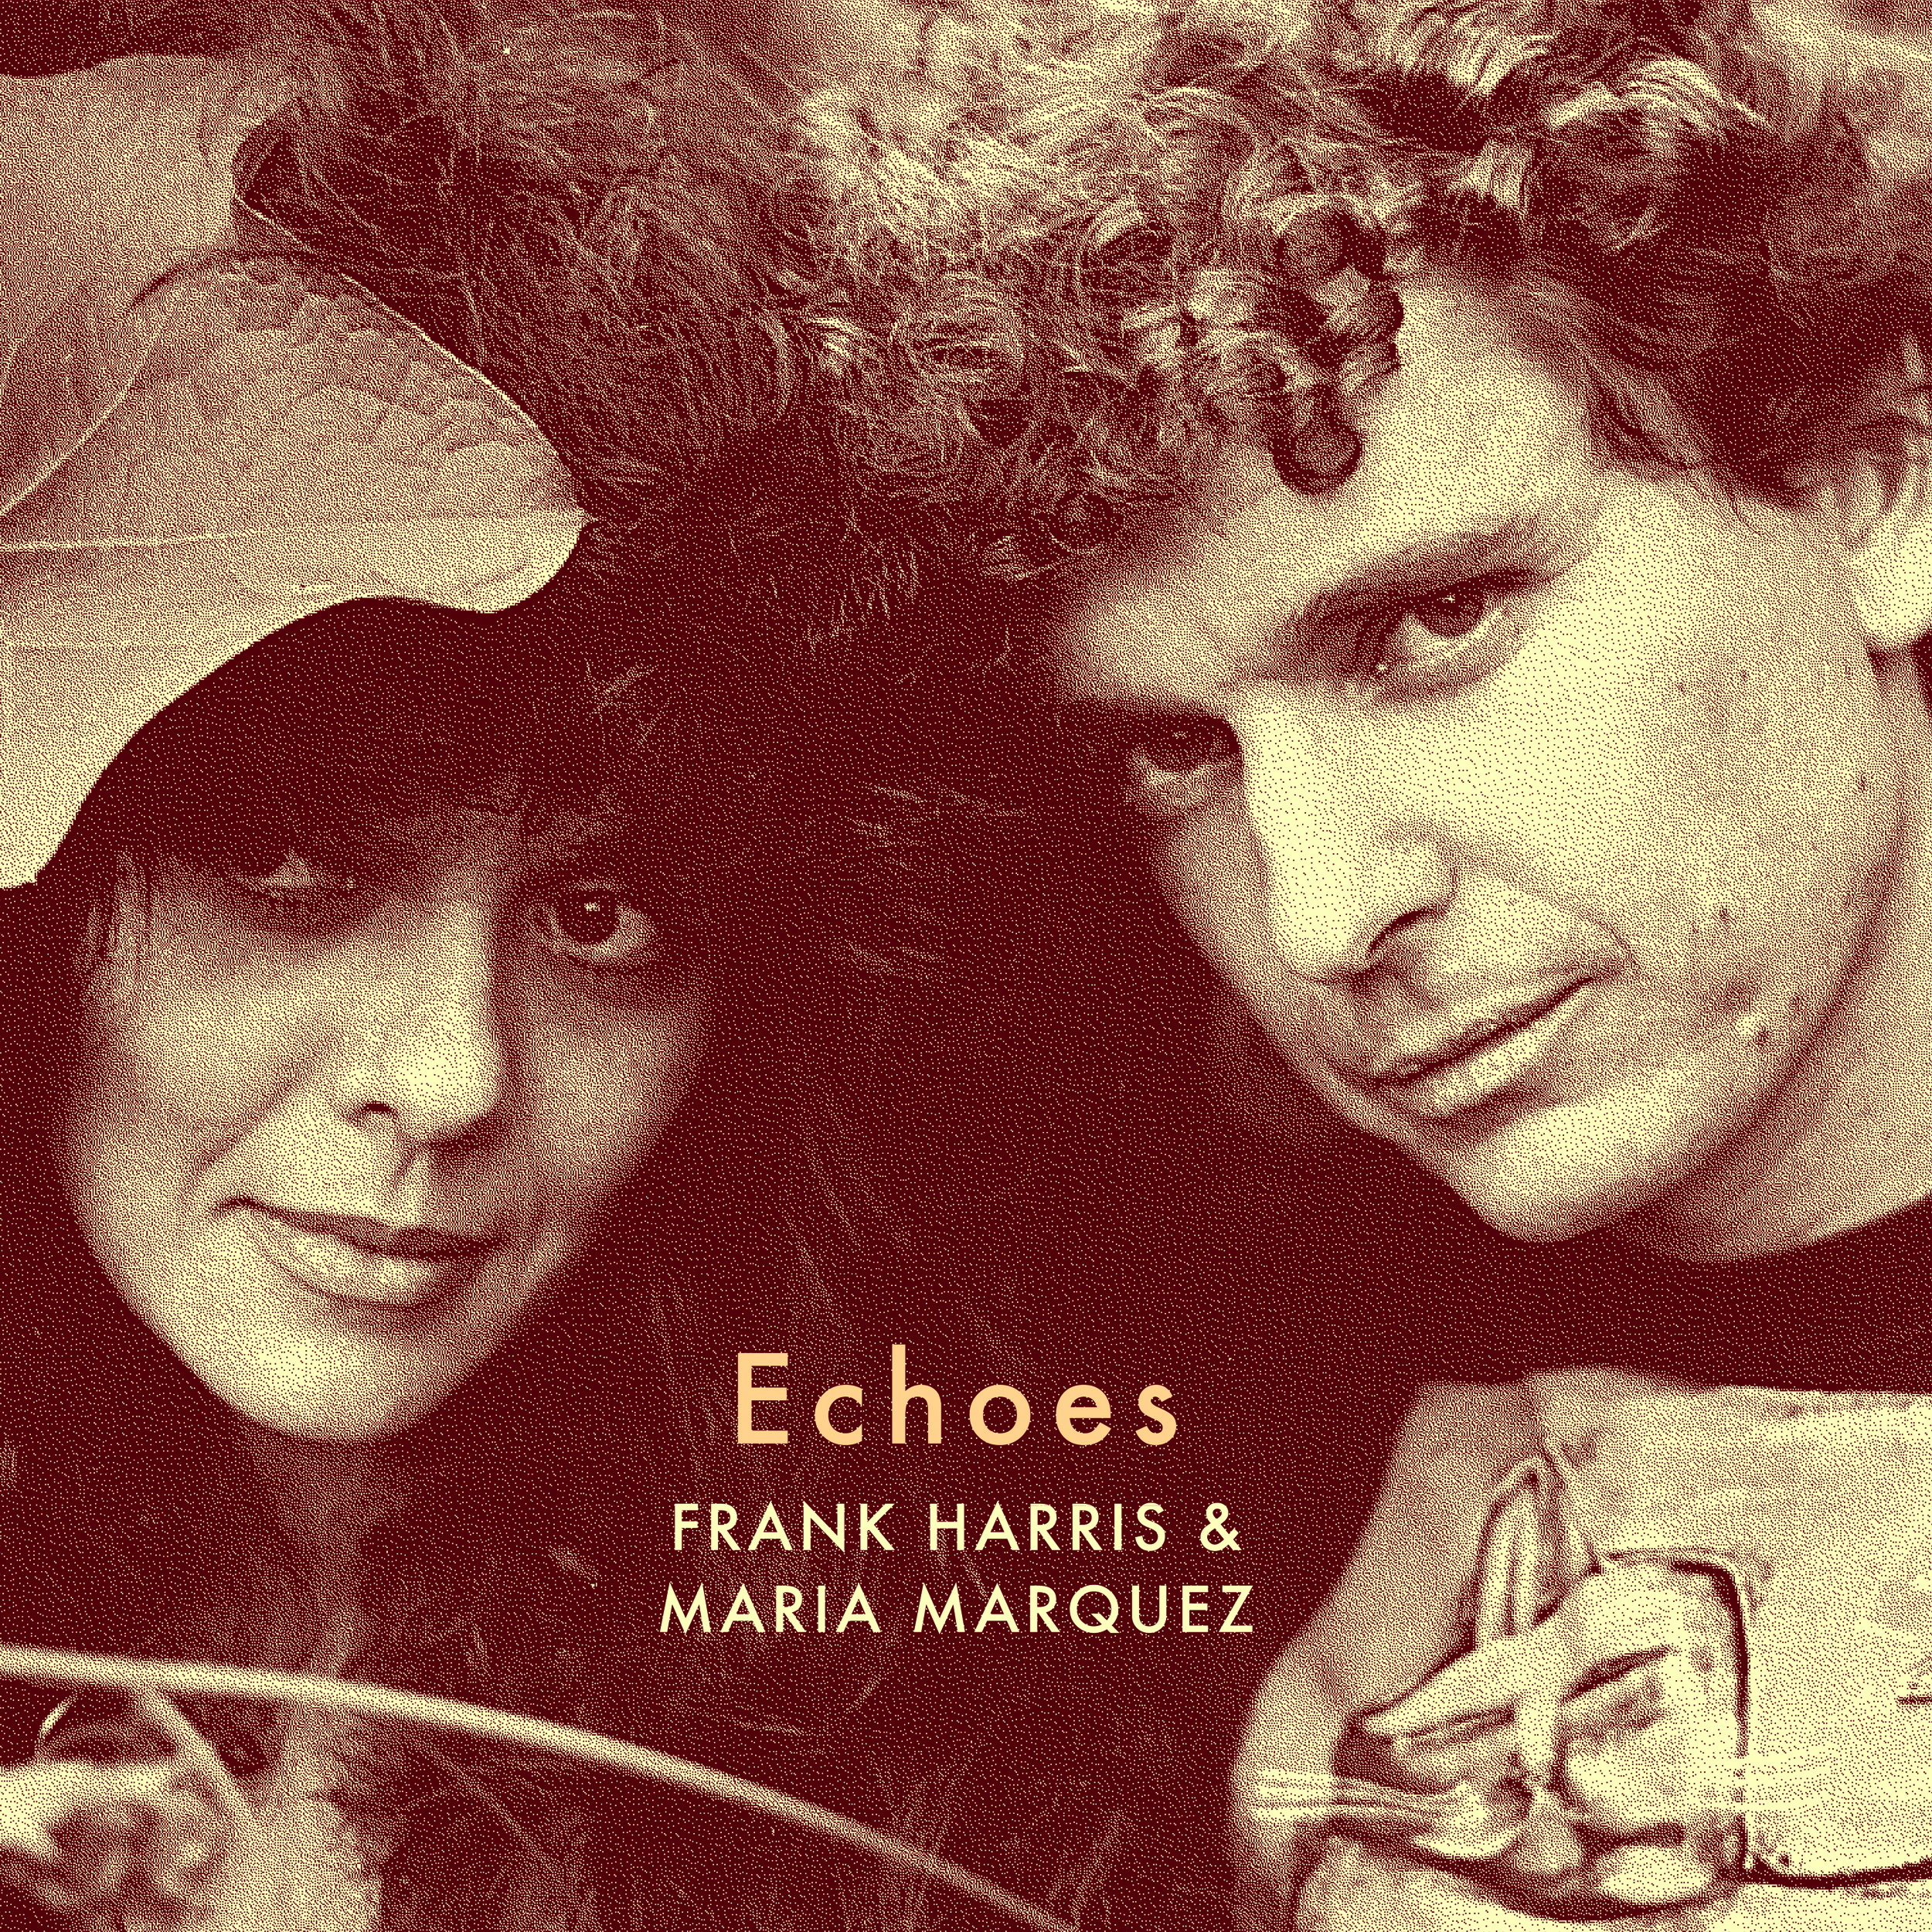 "NEW LP ""Echoes"" - New Frank Harris and Maria Marquez music release on Vinyl from Strangelove Records"